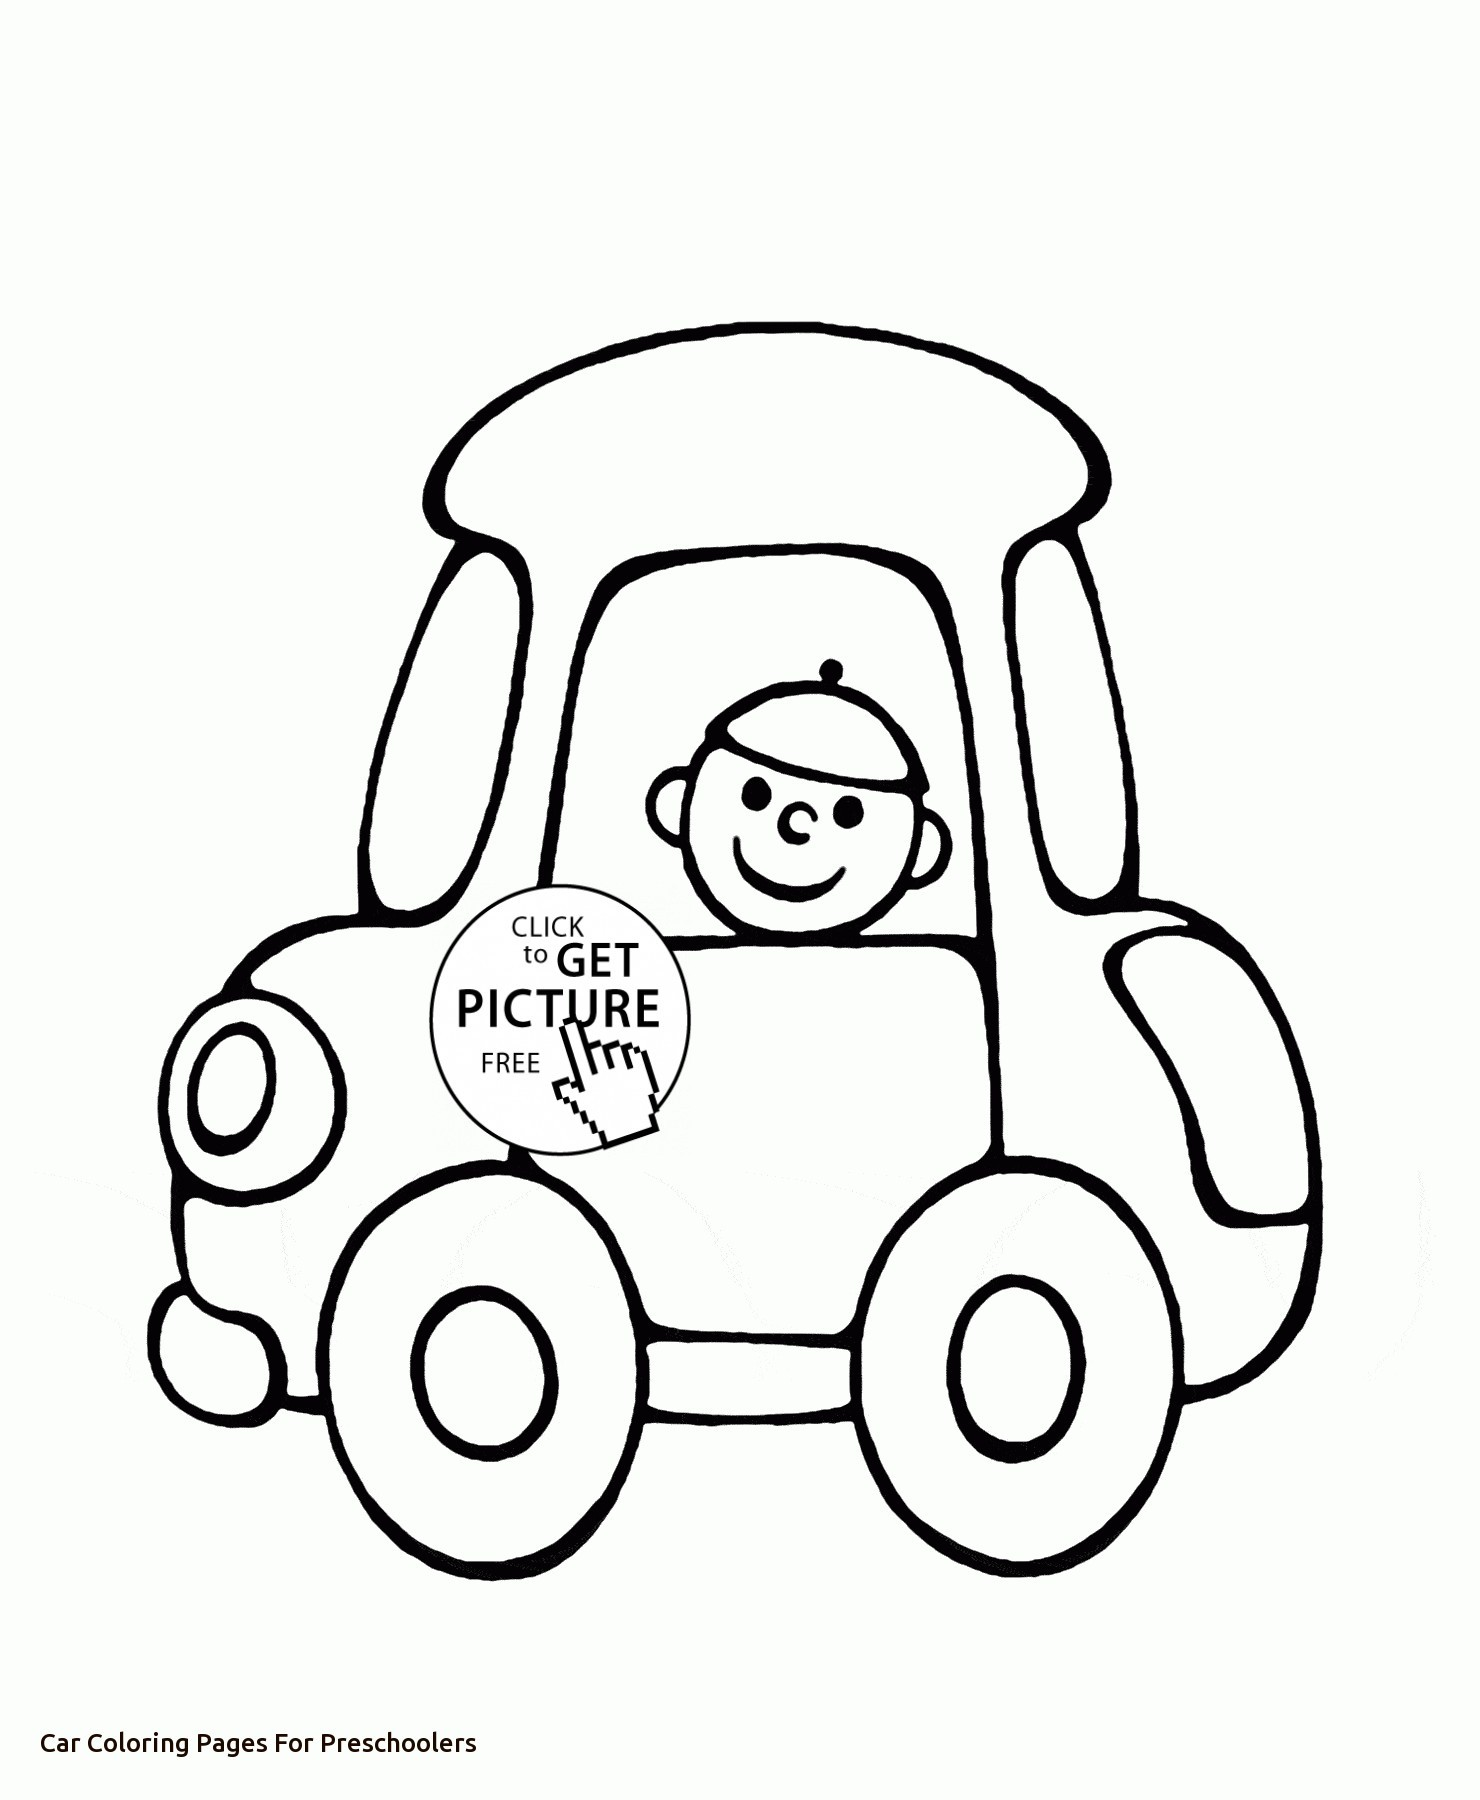 transportation coloring pages for preschoolers at free printable colorings. Black Bedroom Furniture Sets. Home Design Ideas